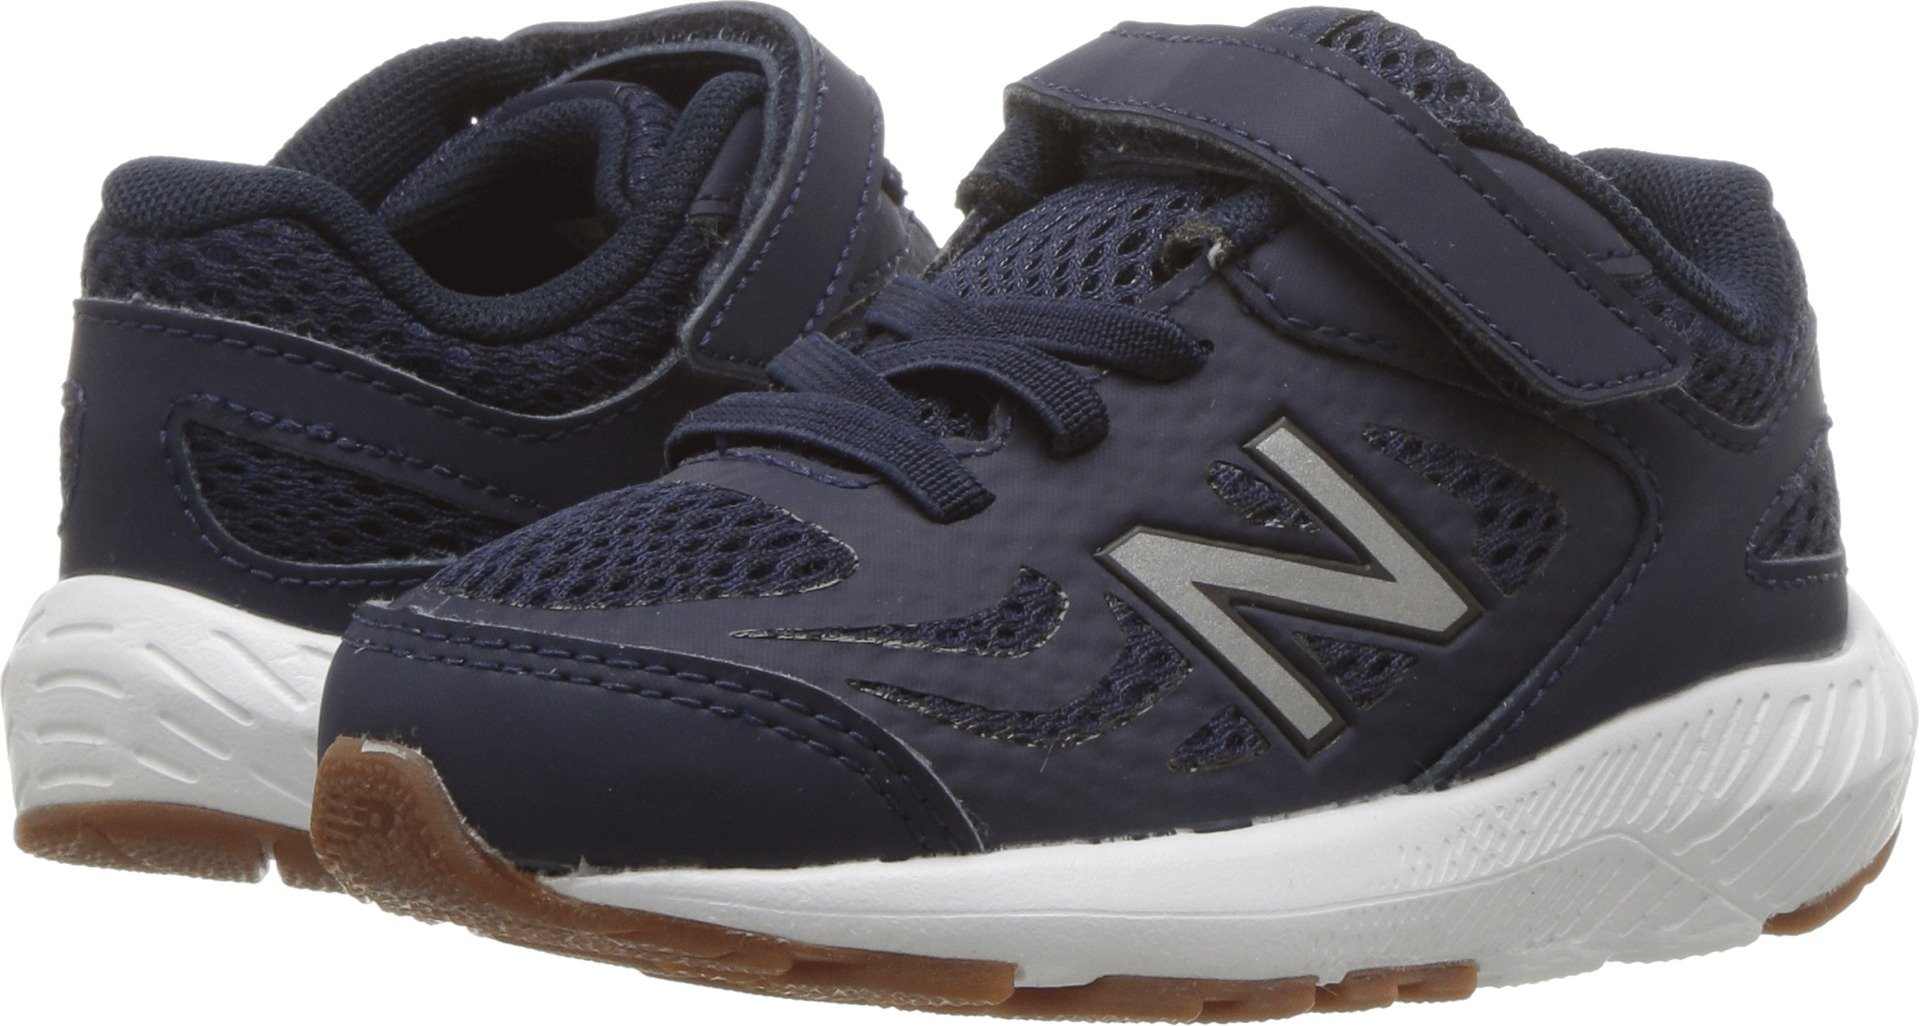 New Balance Boys' 519v1 Hook and Loop Running Shoe Pigment/Black 2 M US Infant by New Balance (Image #1)